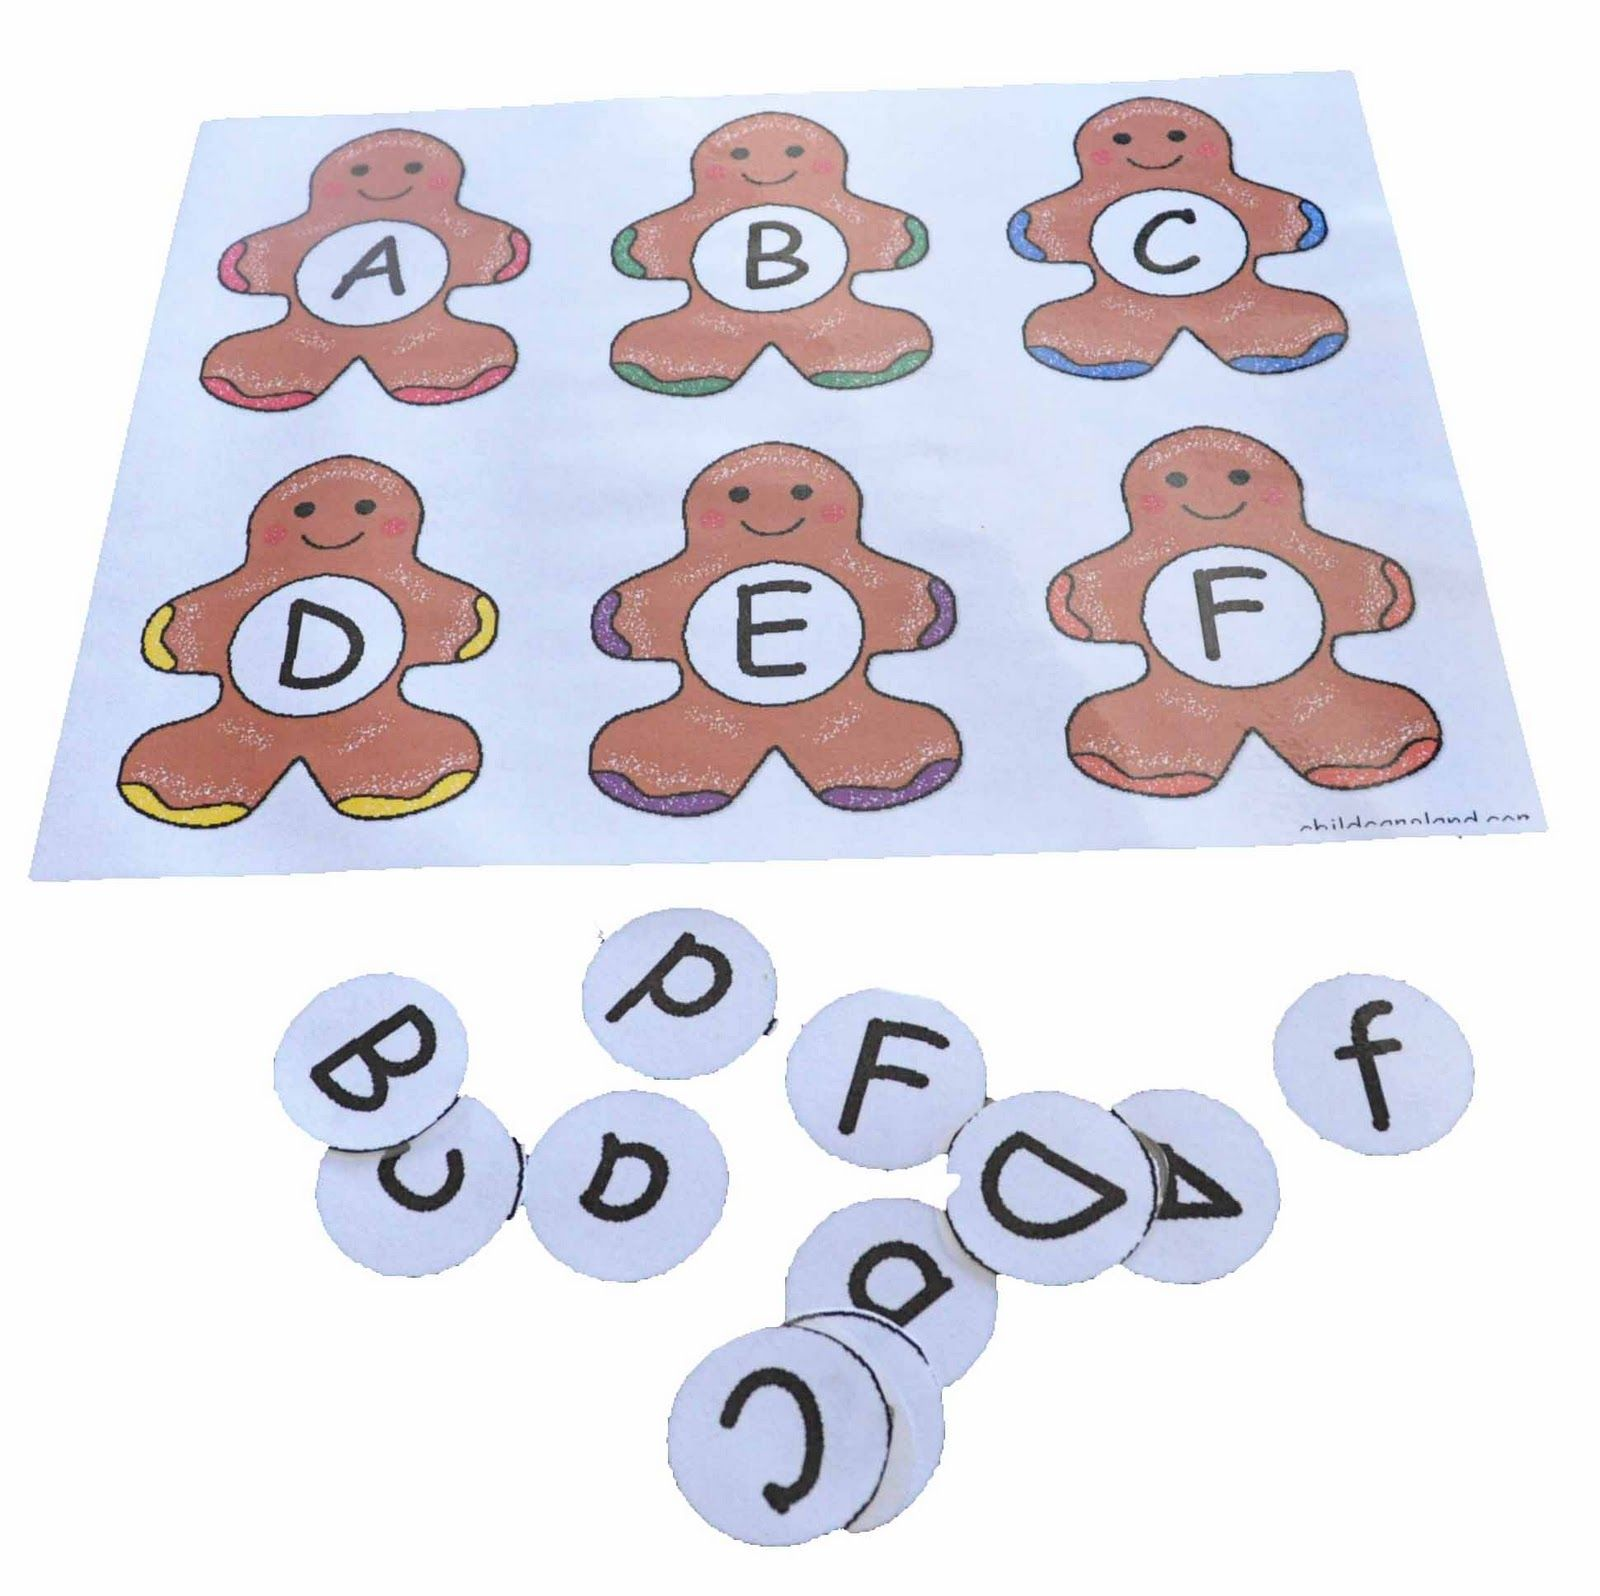 Gingerbread Alphabet Create Words Using The Gingerbread